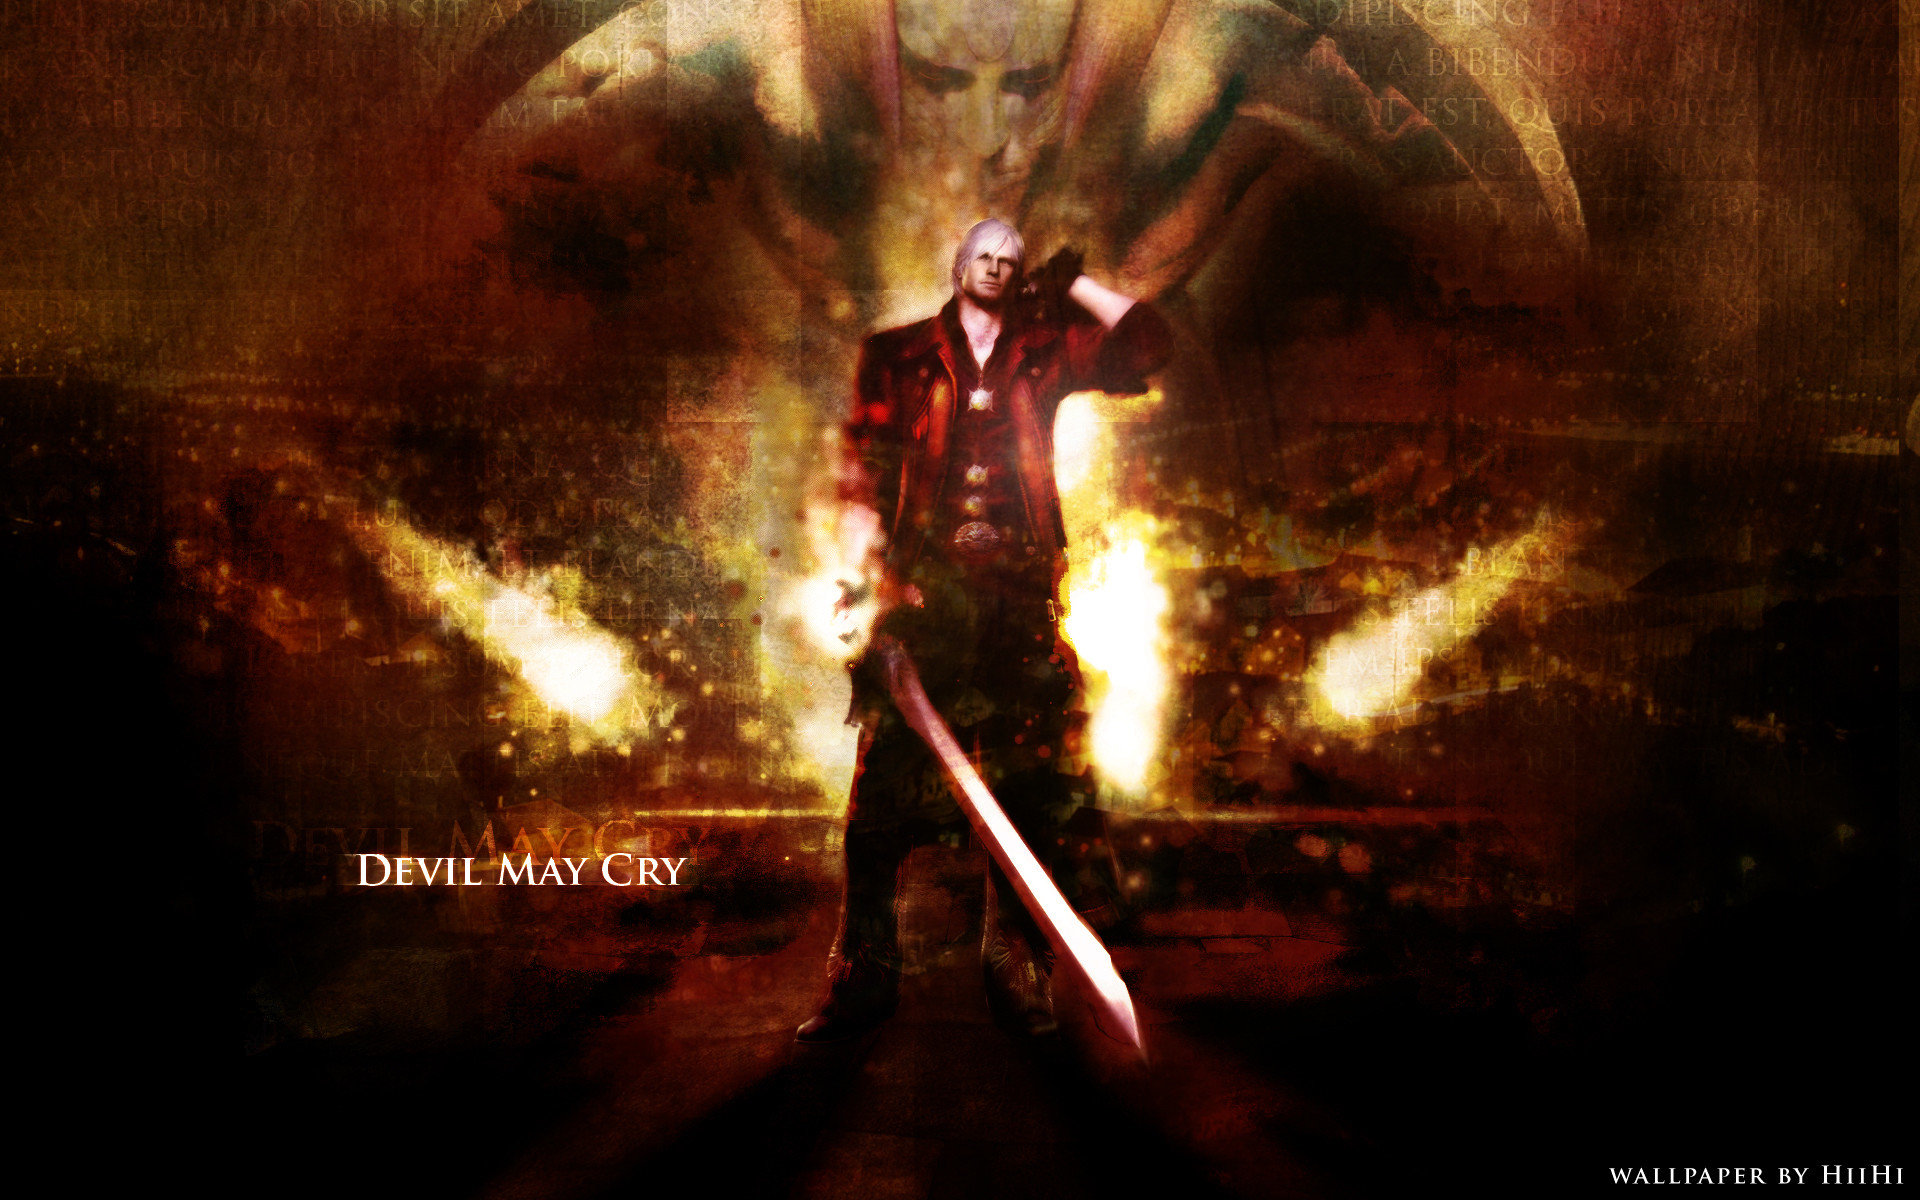 Download hd 1920x1200 Devil May Cry Anime PC background ID:315077 for free